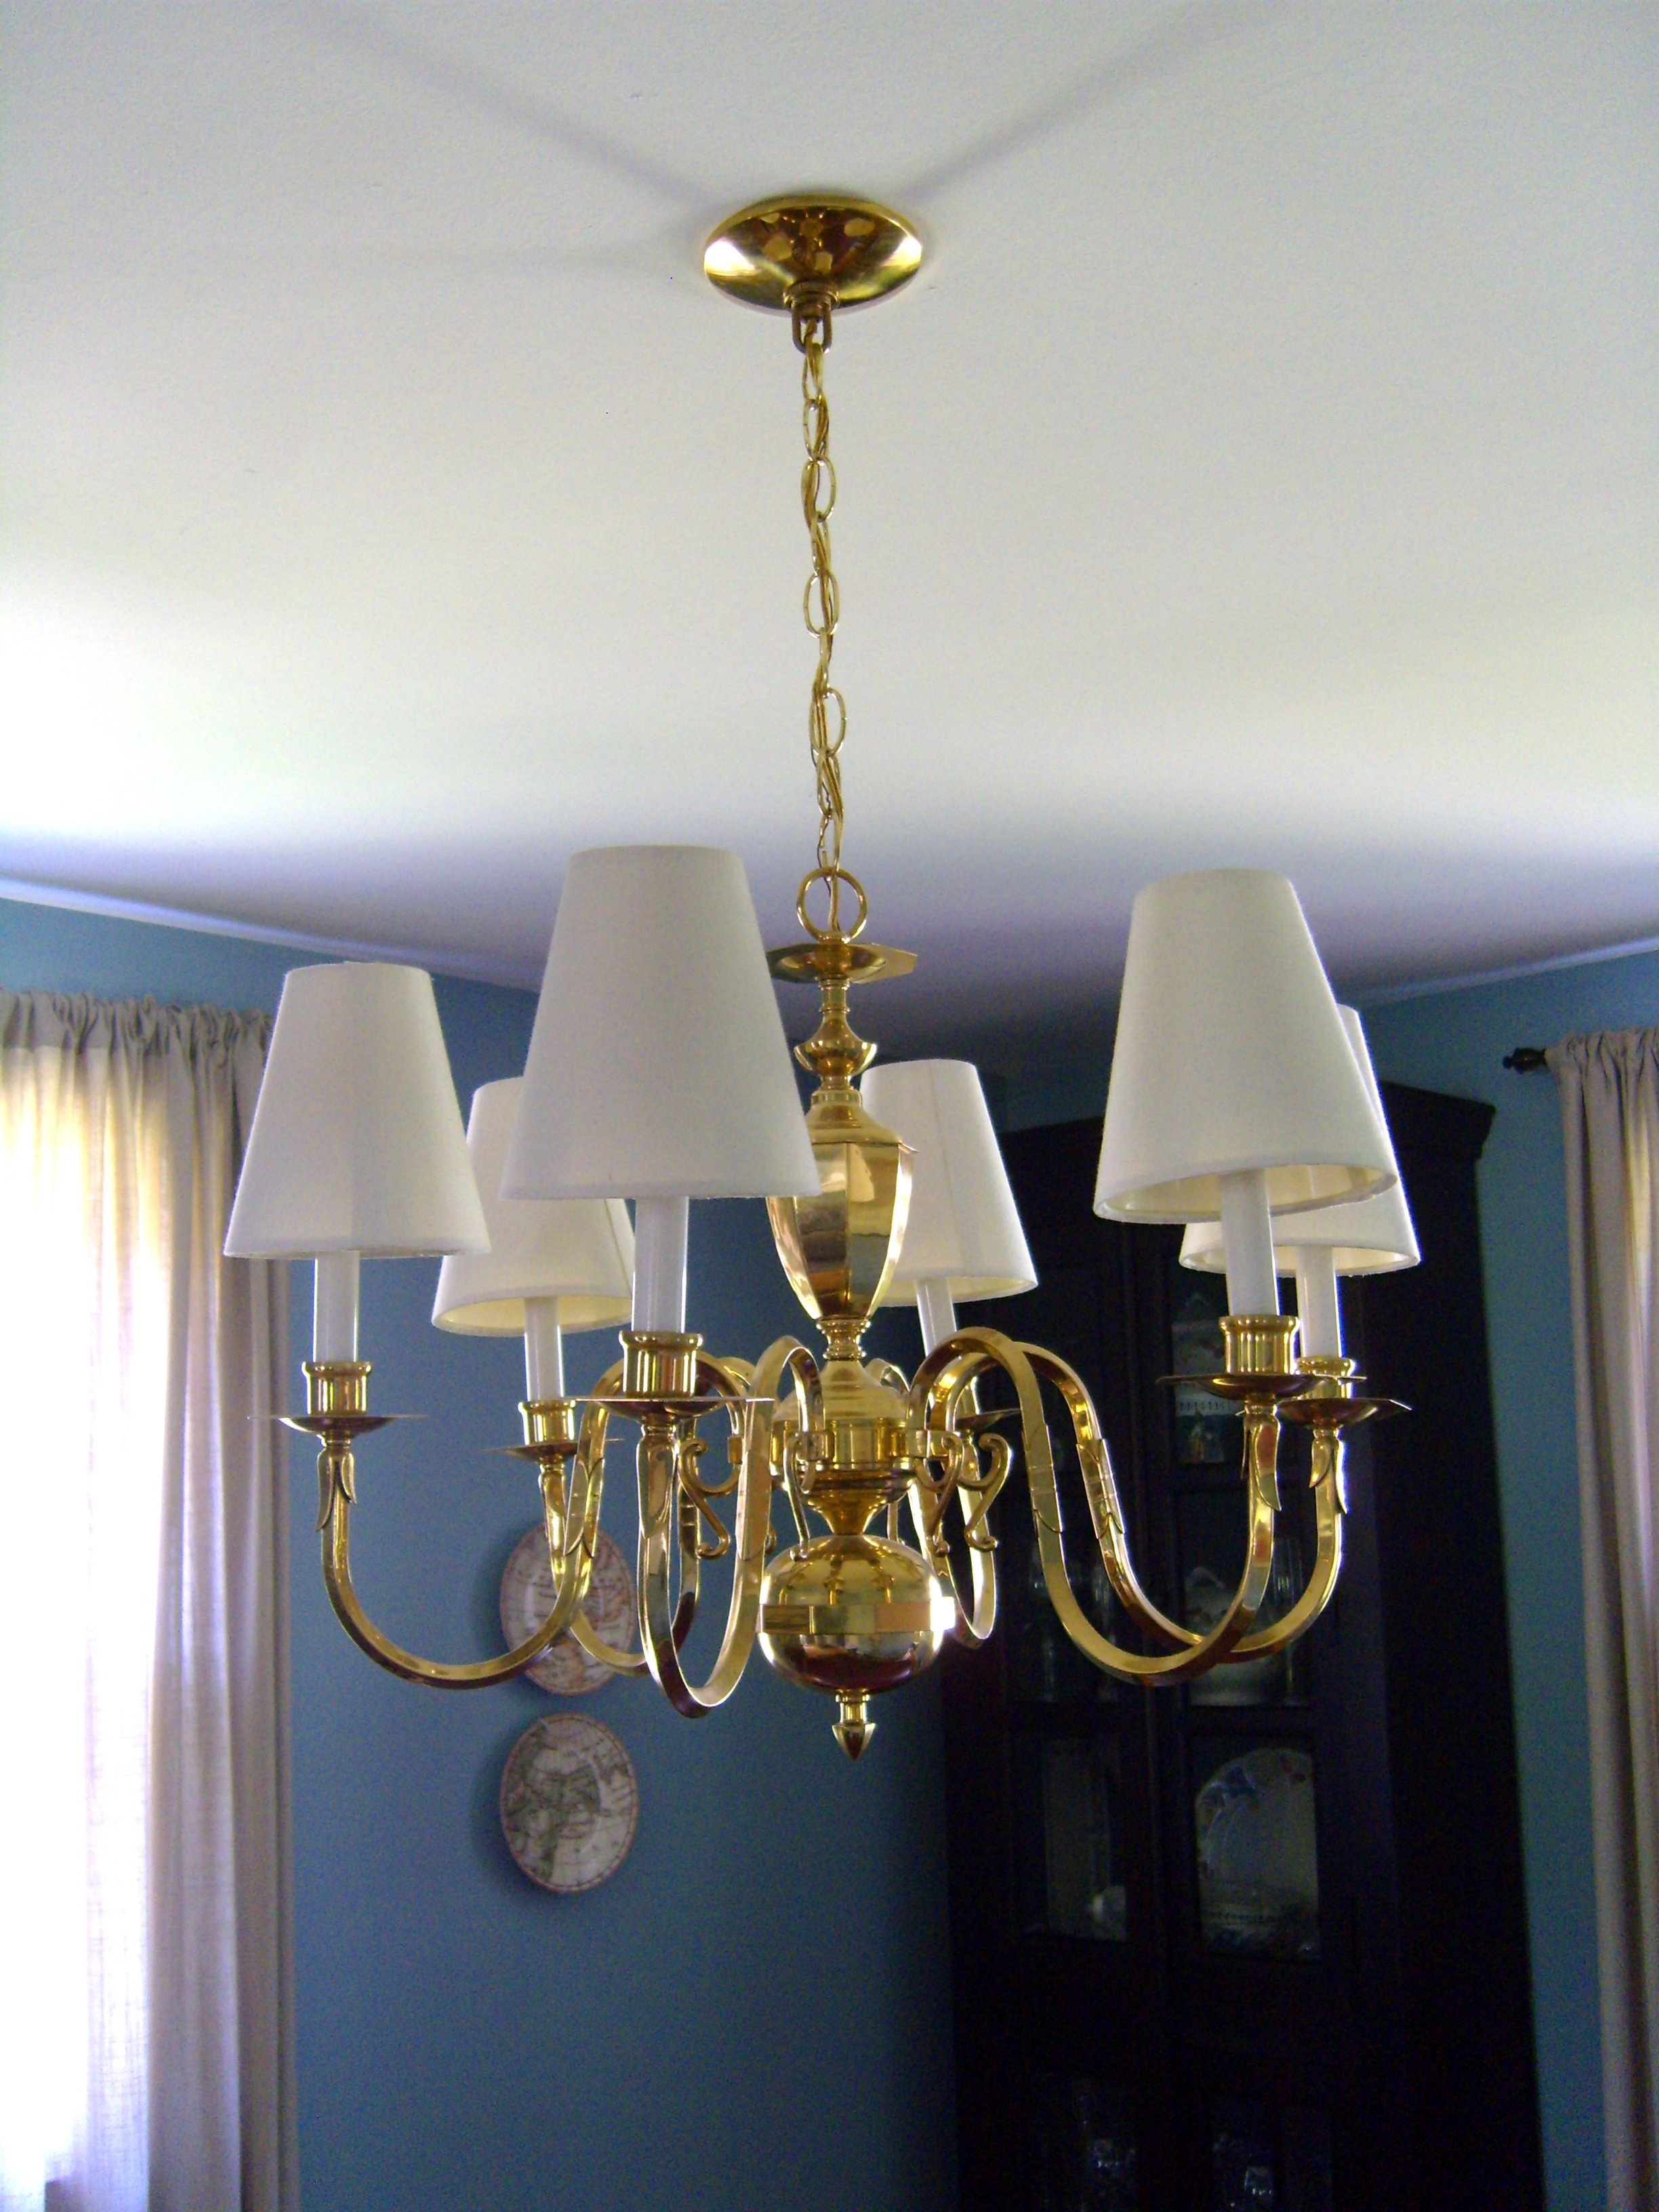 Chandeliers With Lamp Shades Pertaining To Widely Used Chandelier Lamp Shades Drum Shape Tab Blackover Drumless Less Shade (View 7 of 15)